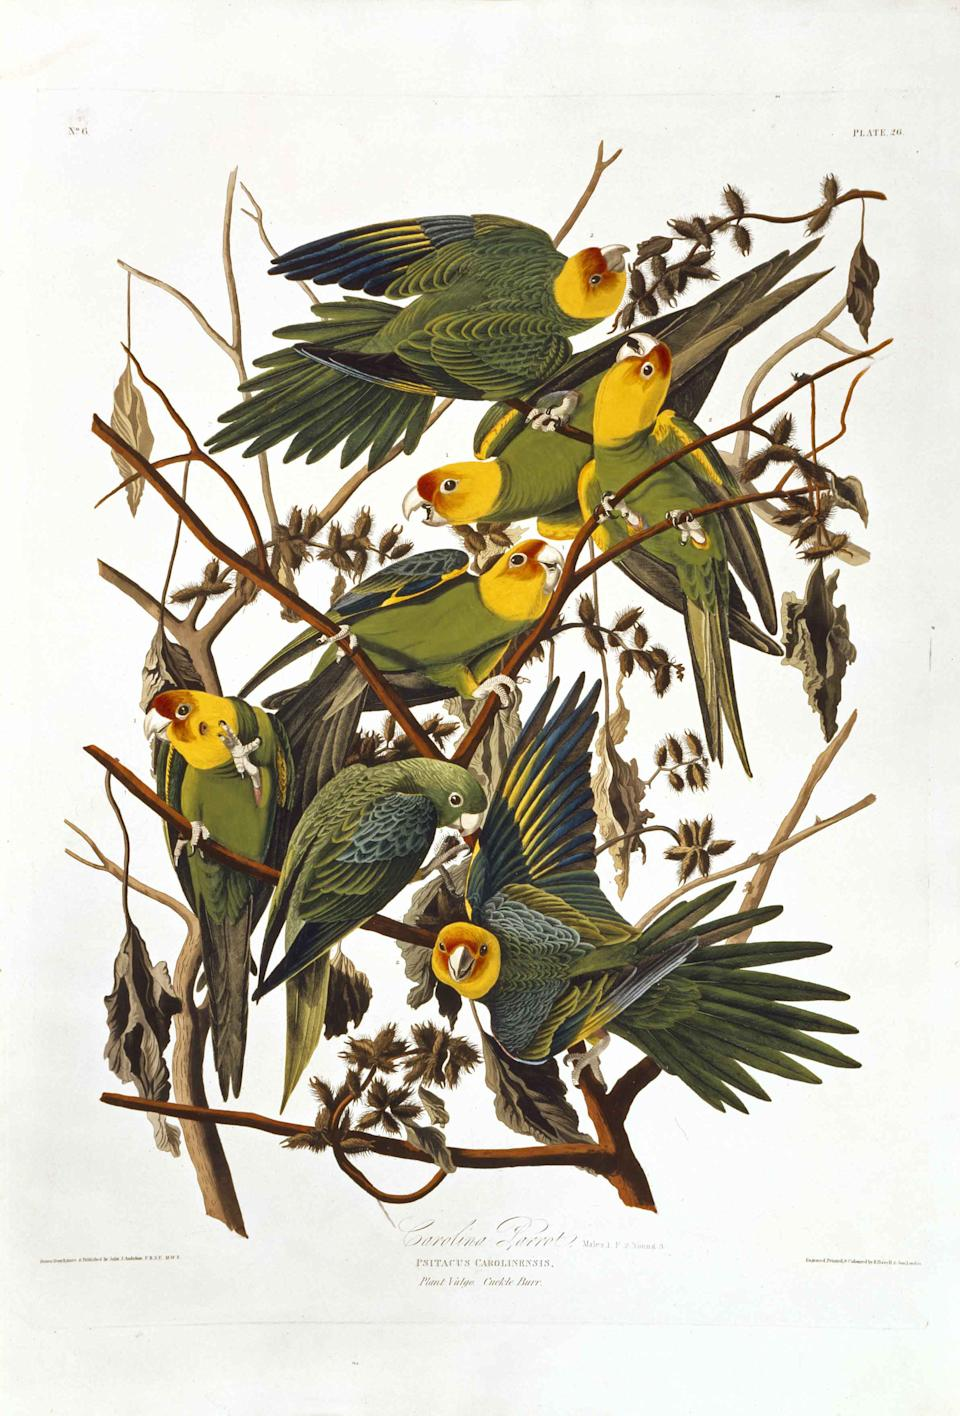 Audubon's The Birds of America – the world's most expensive book and one of the best-known natural history books ever produced. It was first published in double elephant folio size between 1827 and 1838 and is famous for its stunning life-size illustrations of birds. (Natural History Museum)